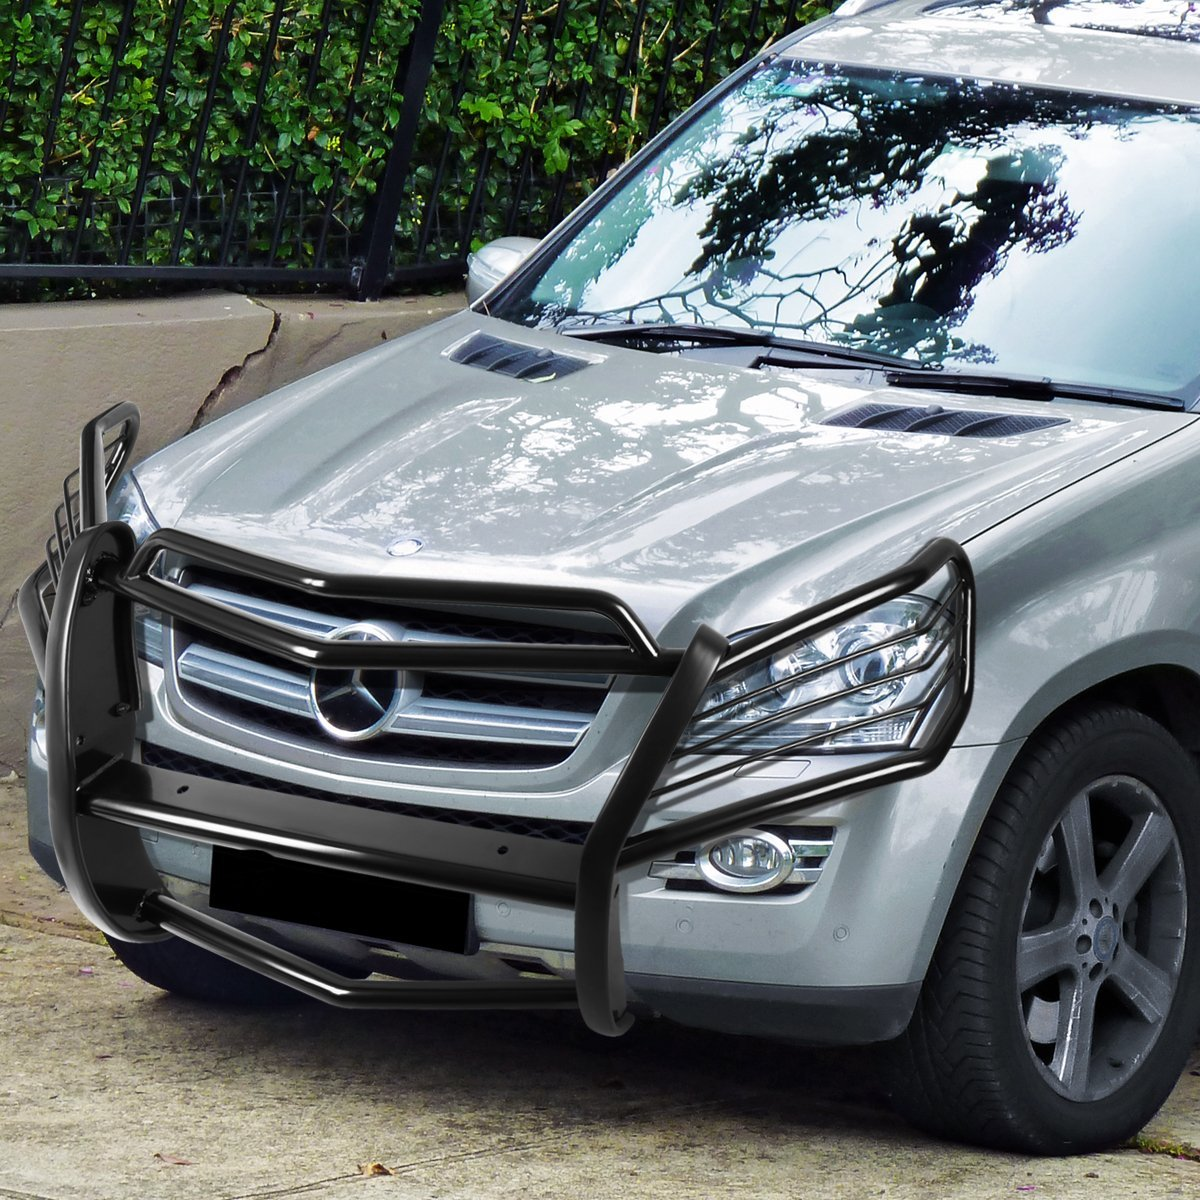 07 12 mercedes benz x164 gl class front bumper protector for Mercedes benz 07